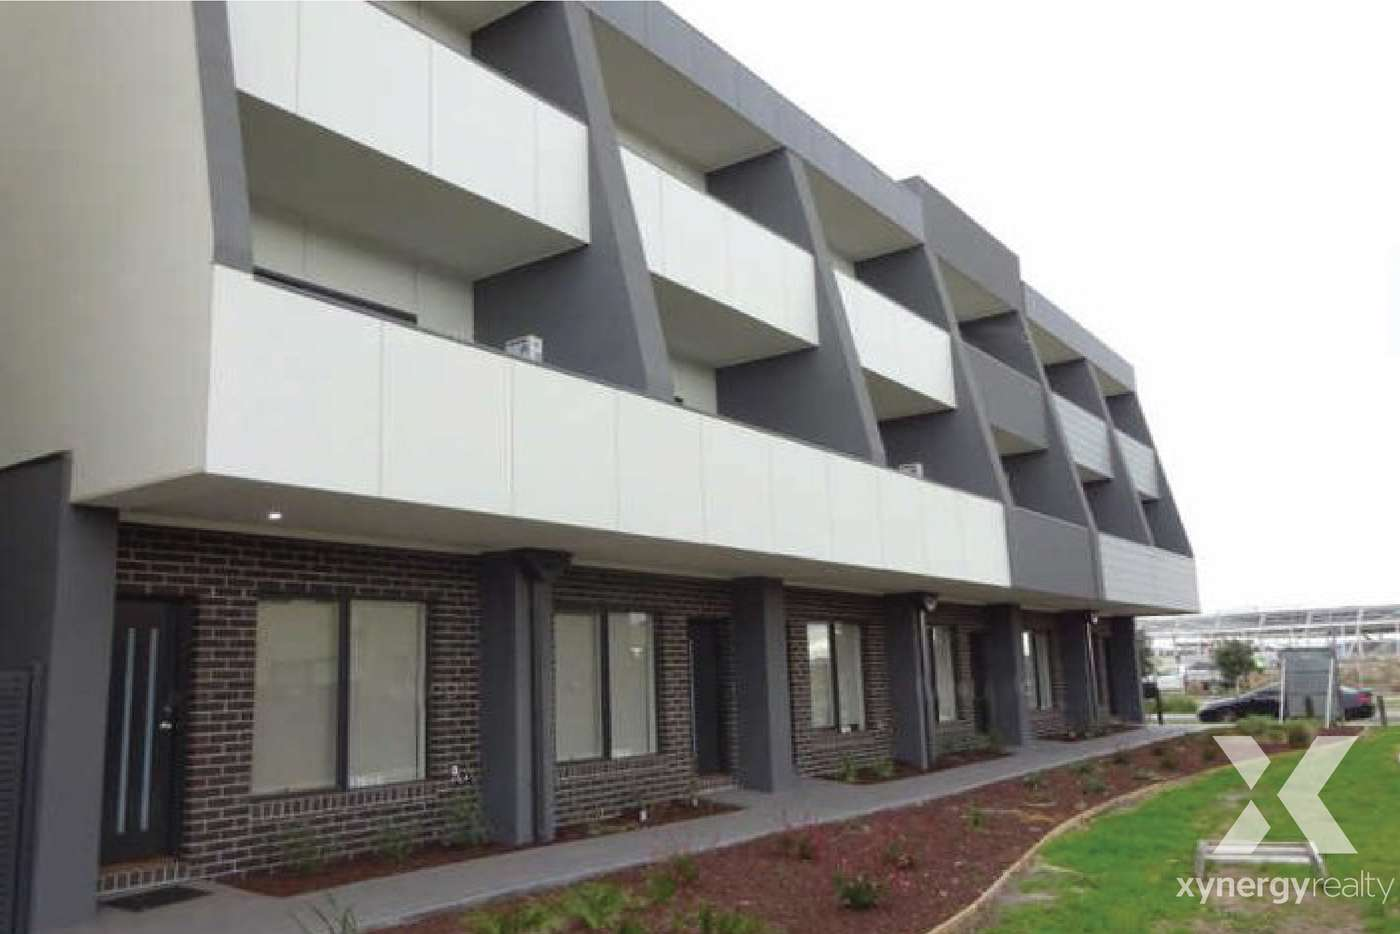 Main view of Homely townhouse listing, 22/1-27 Punt Street, Craigieburn VIC 3064